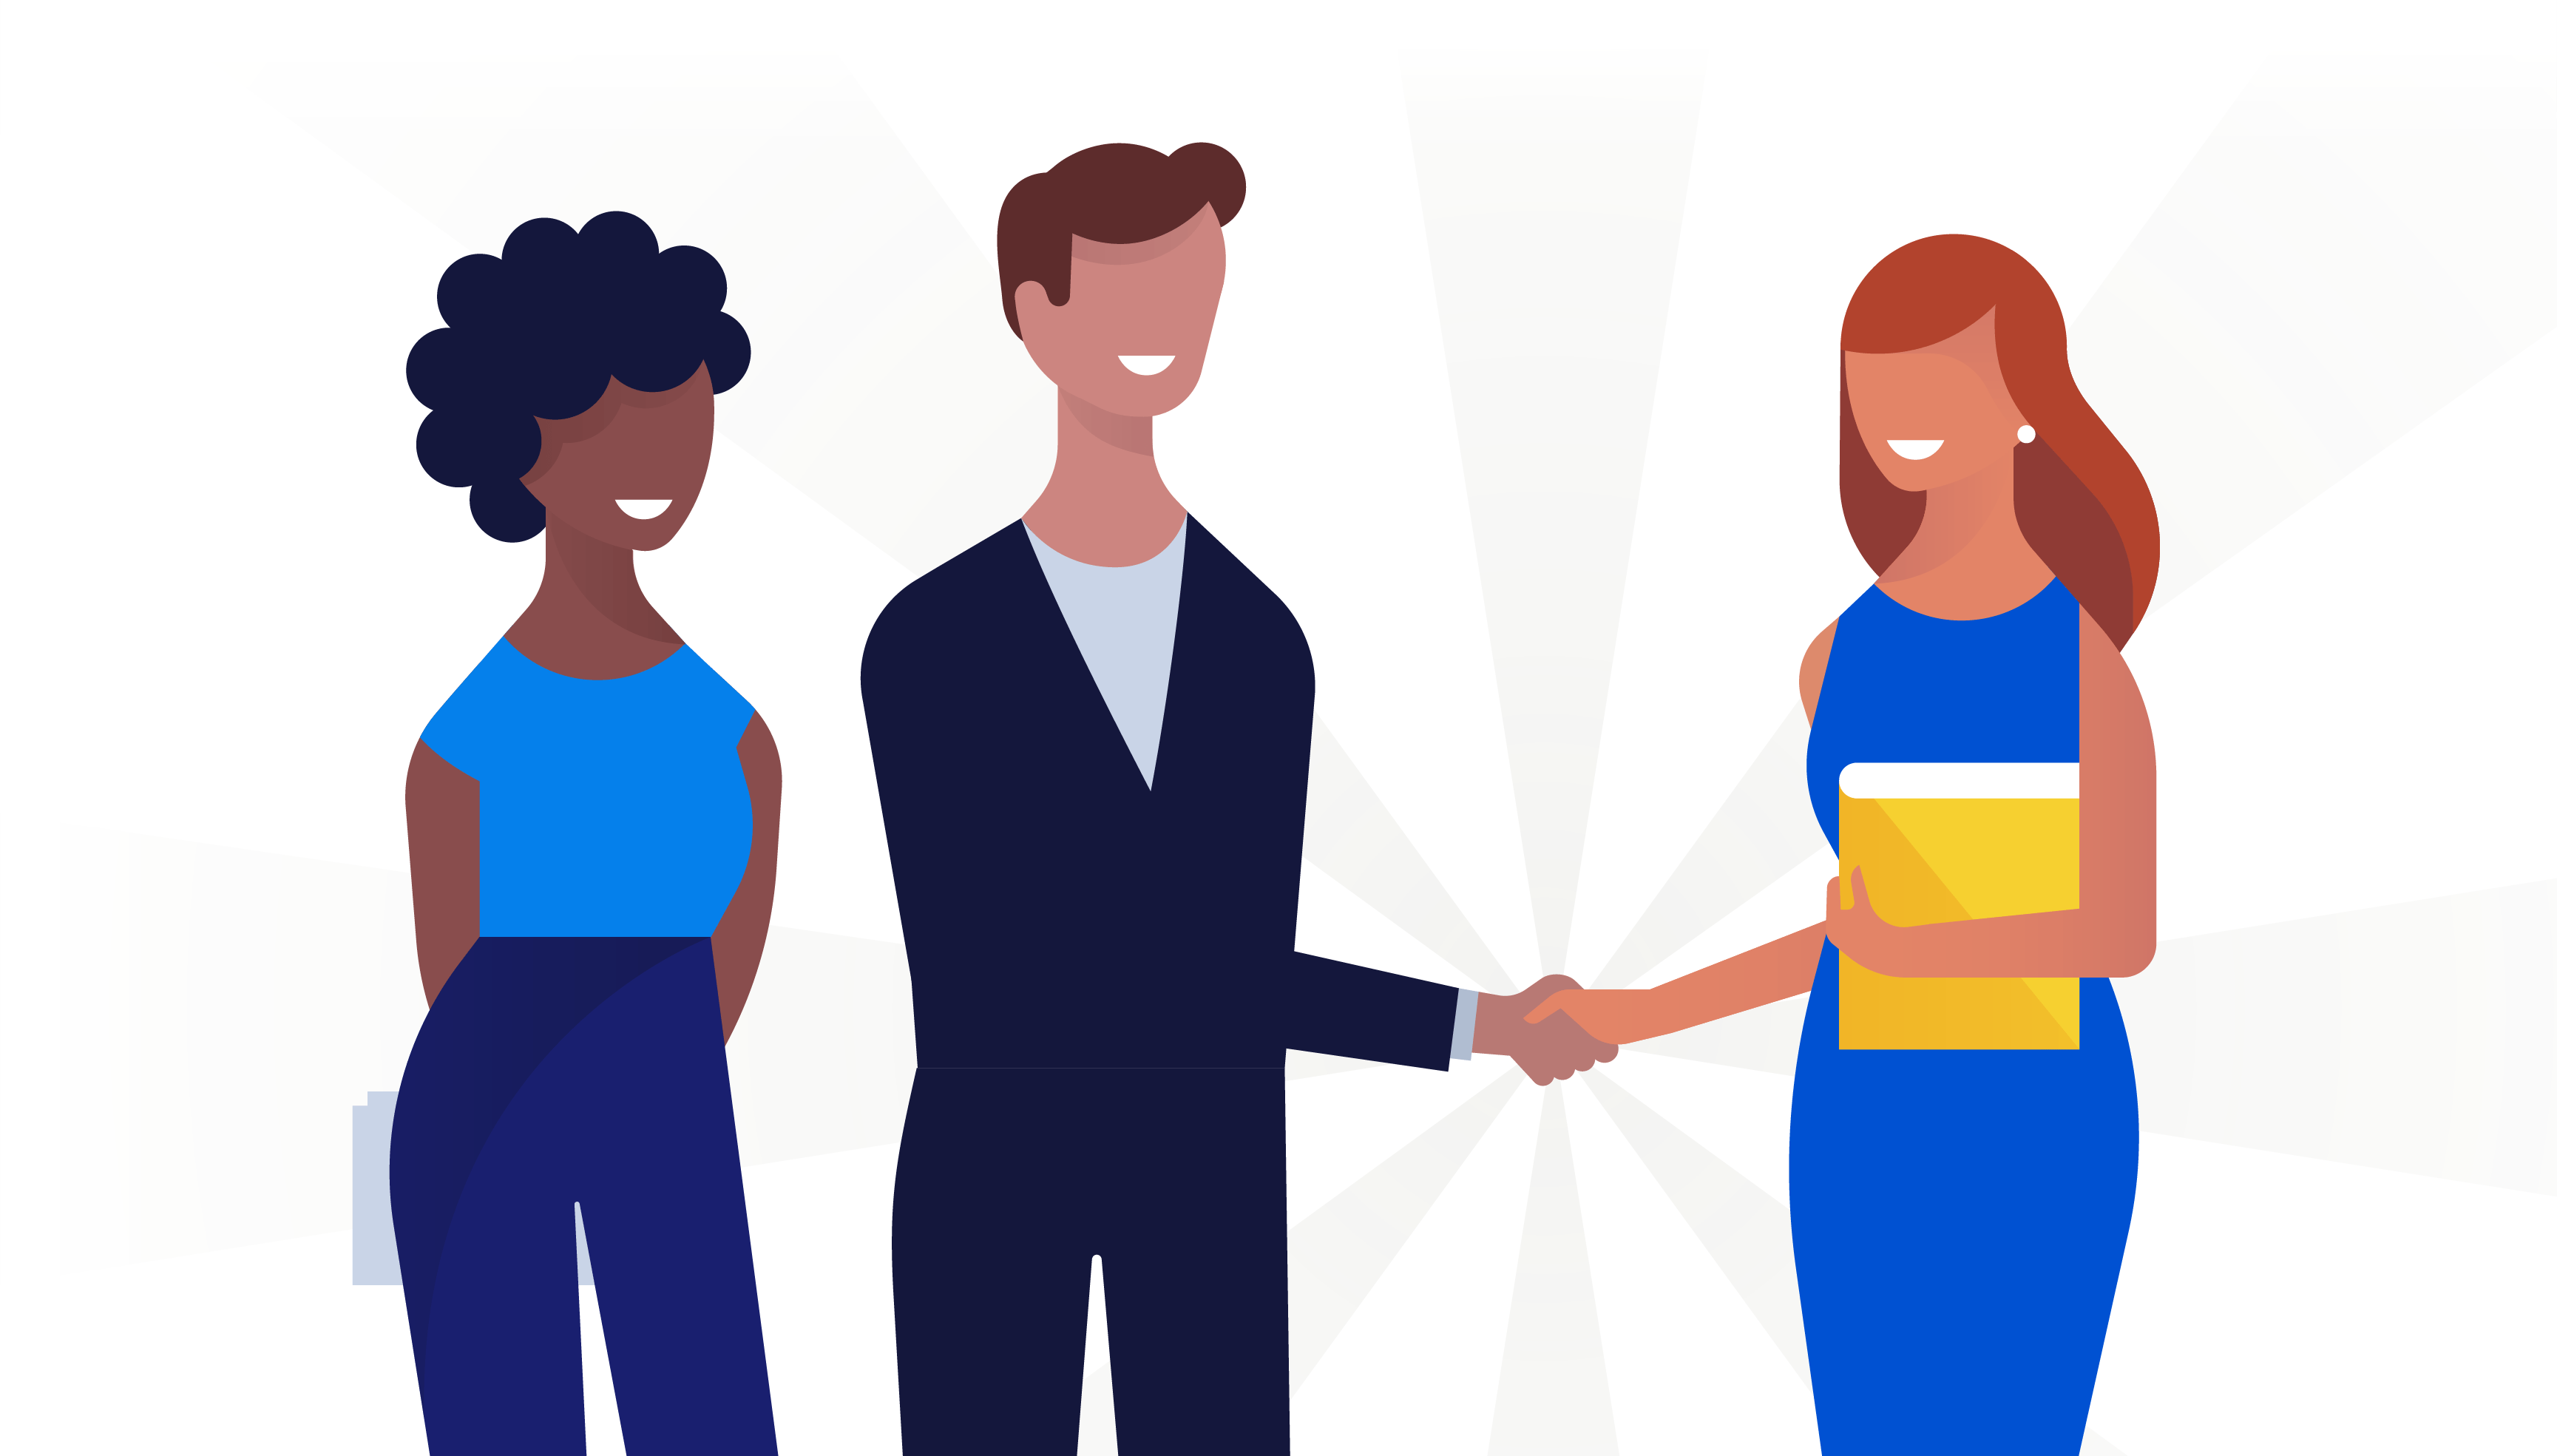 Illustration of three businesspeople shaking hands